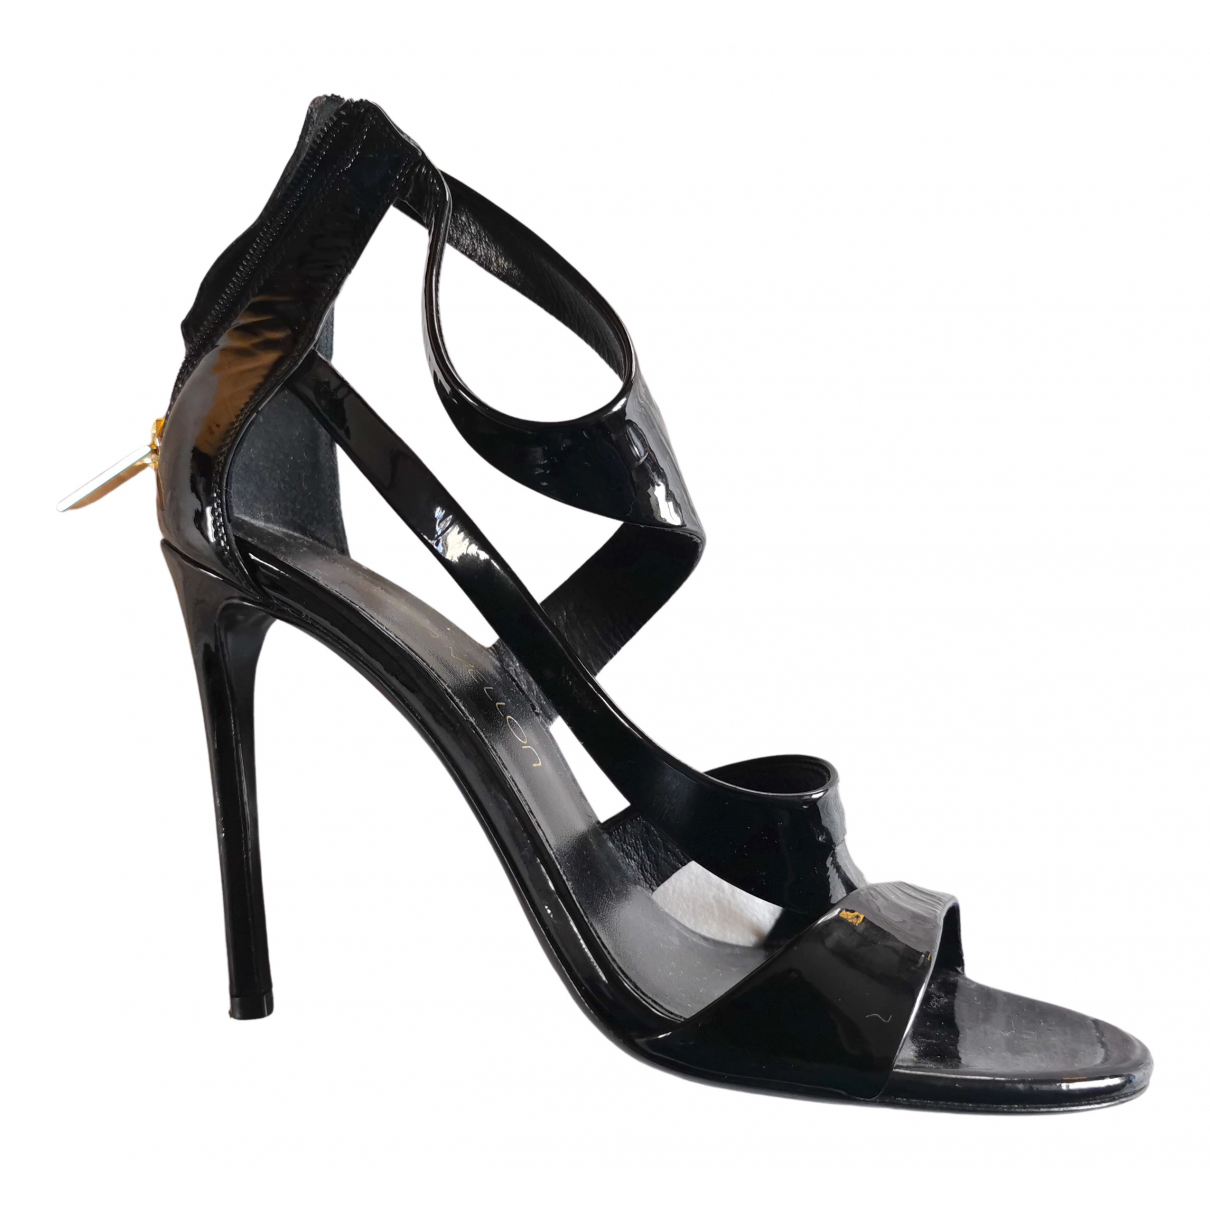 Tamara Mellon \N Black Patent leather Sandals for Women 37 EU